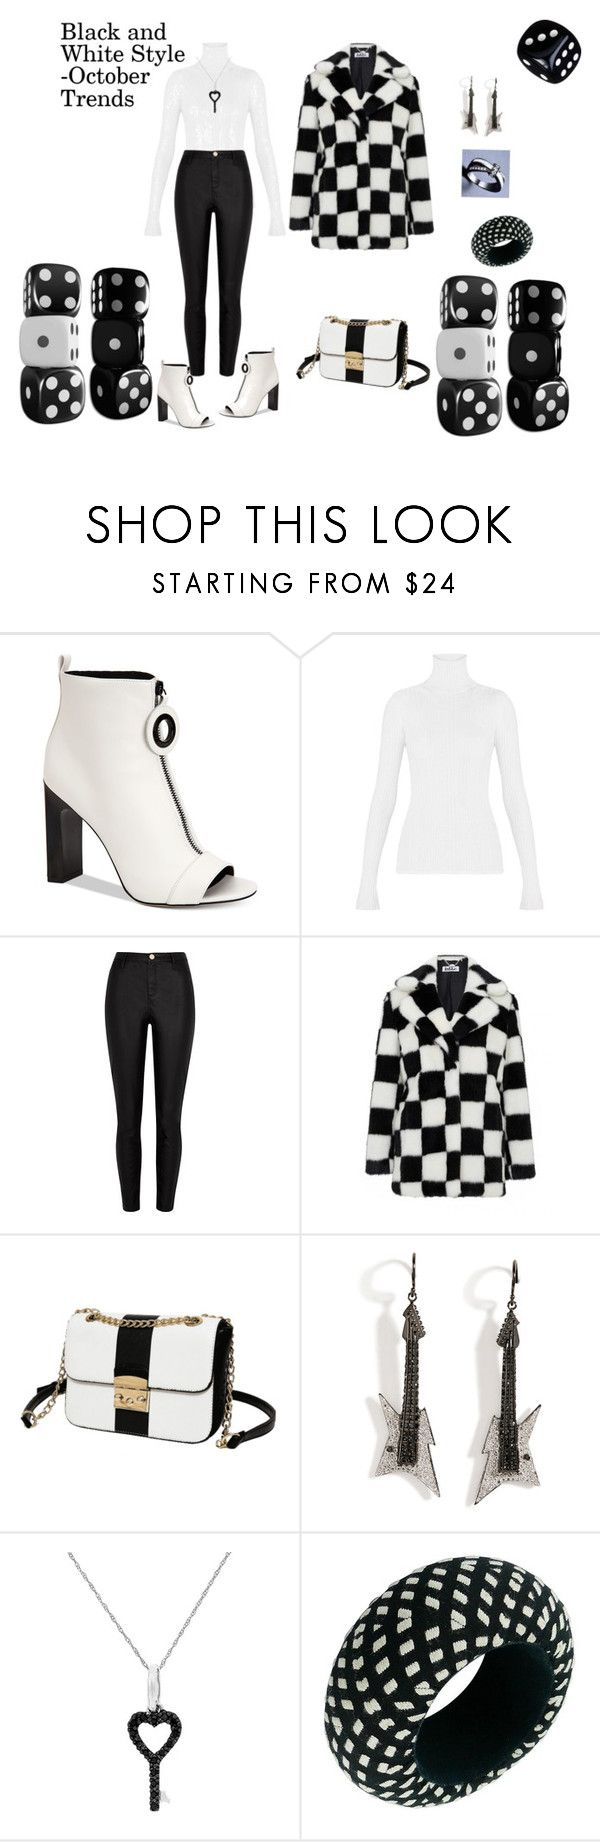 """""""October Trends"""" by rebeccadavisblogger ❤ liked on Polyvore featuring Calvin Klein, River Island, Jakke, Lynn Ban, Suzy Levian and Christian Lacroix"""